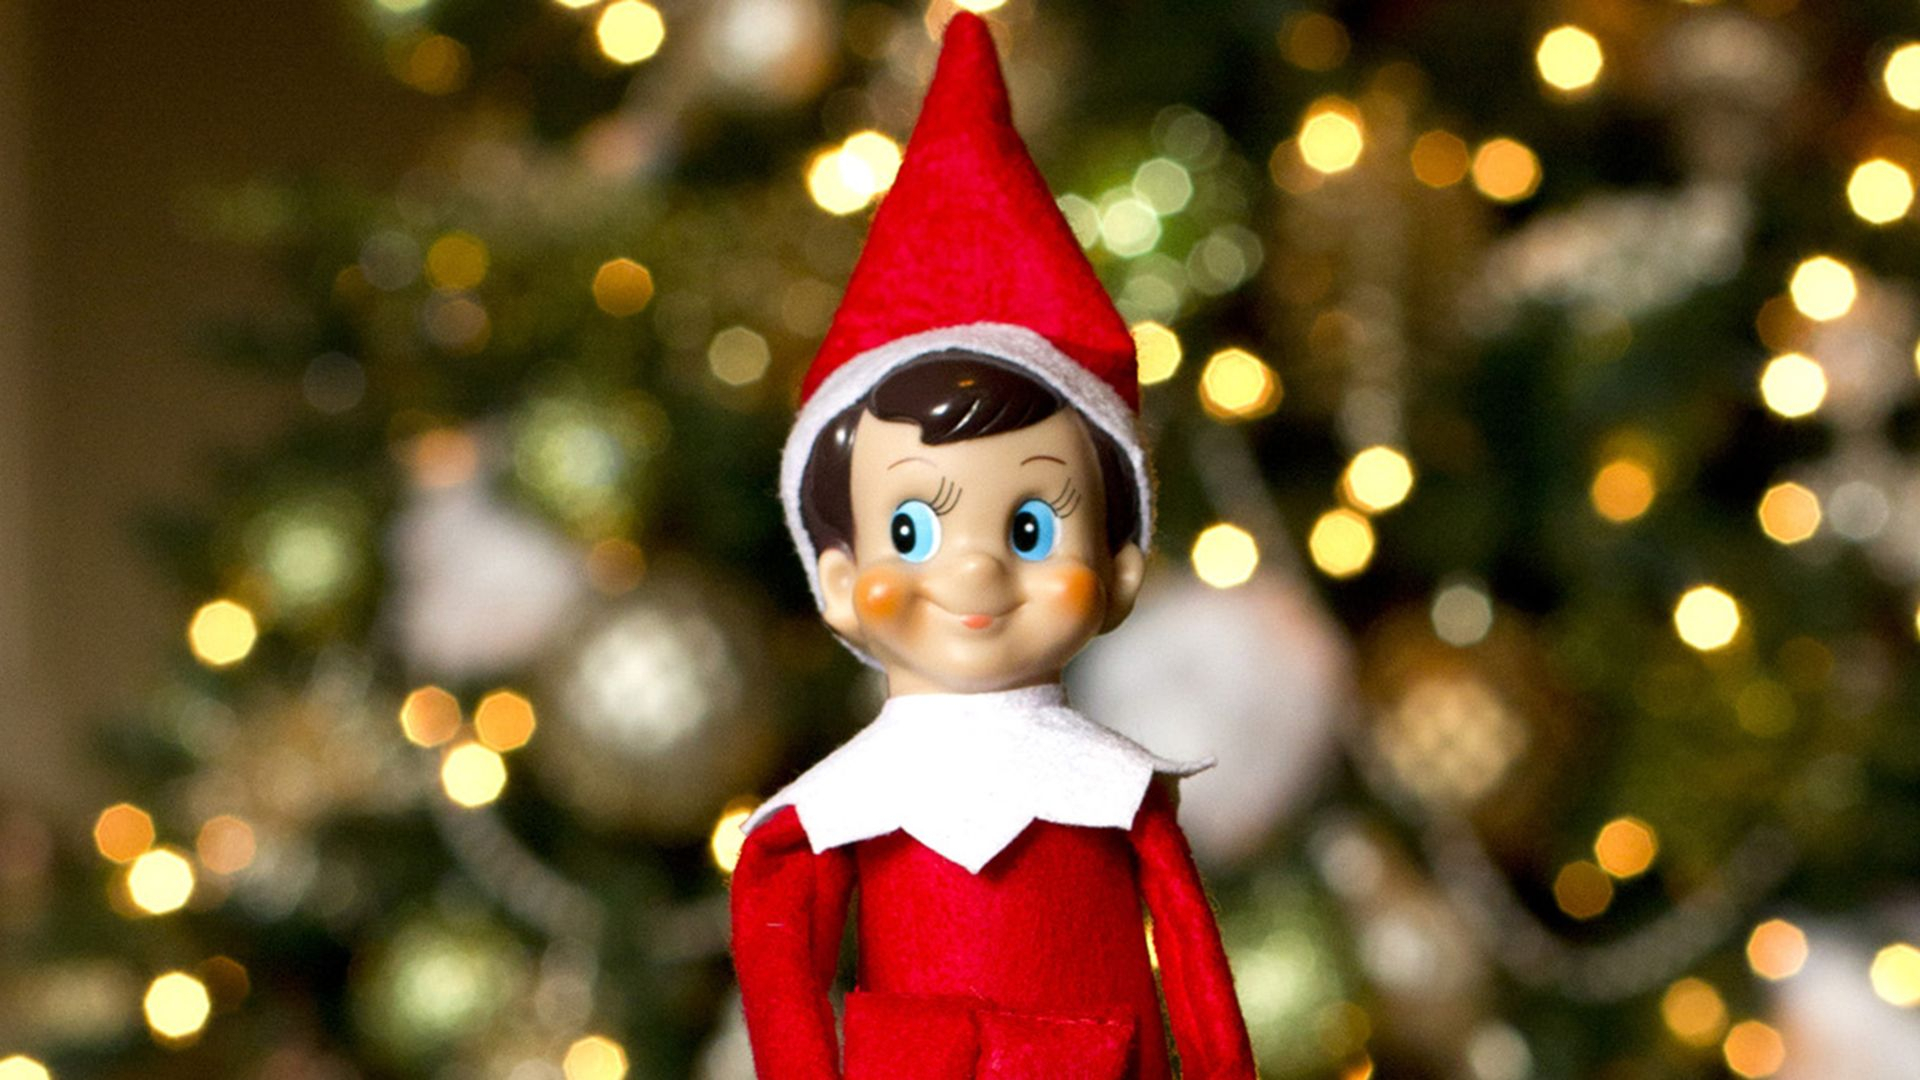 the elf on the shelf wallpapers - wallpaper cave